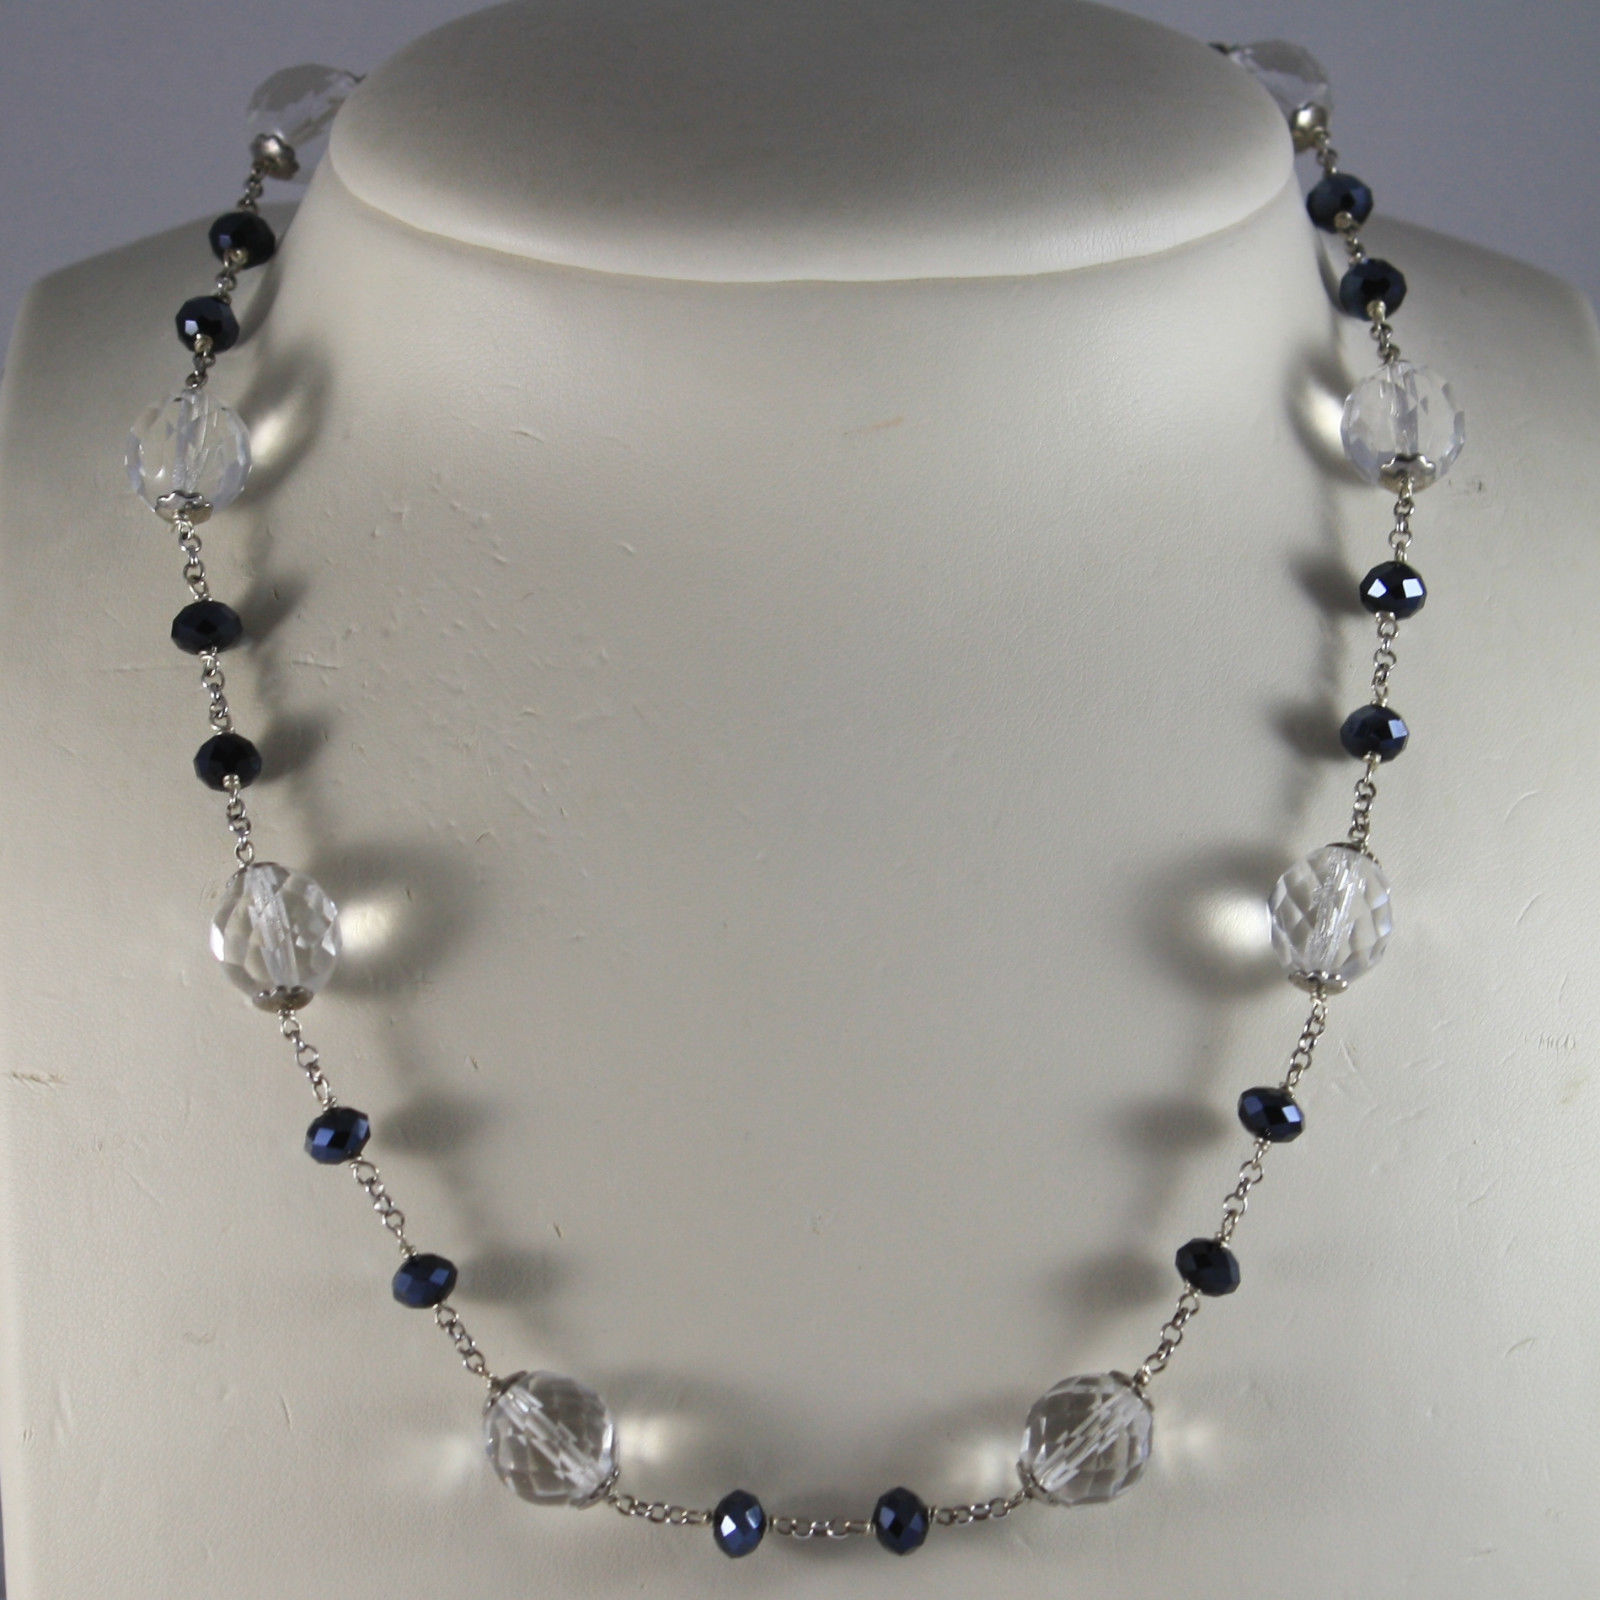 .925 SILVER RHODIUM NECKLACE WITH TRANSPARENT AND BLACK CRYSTALS